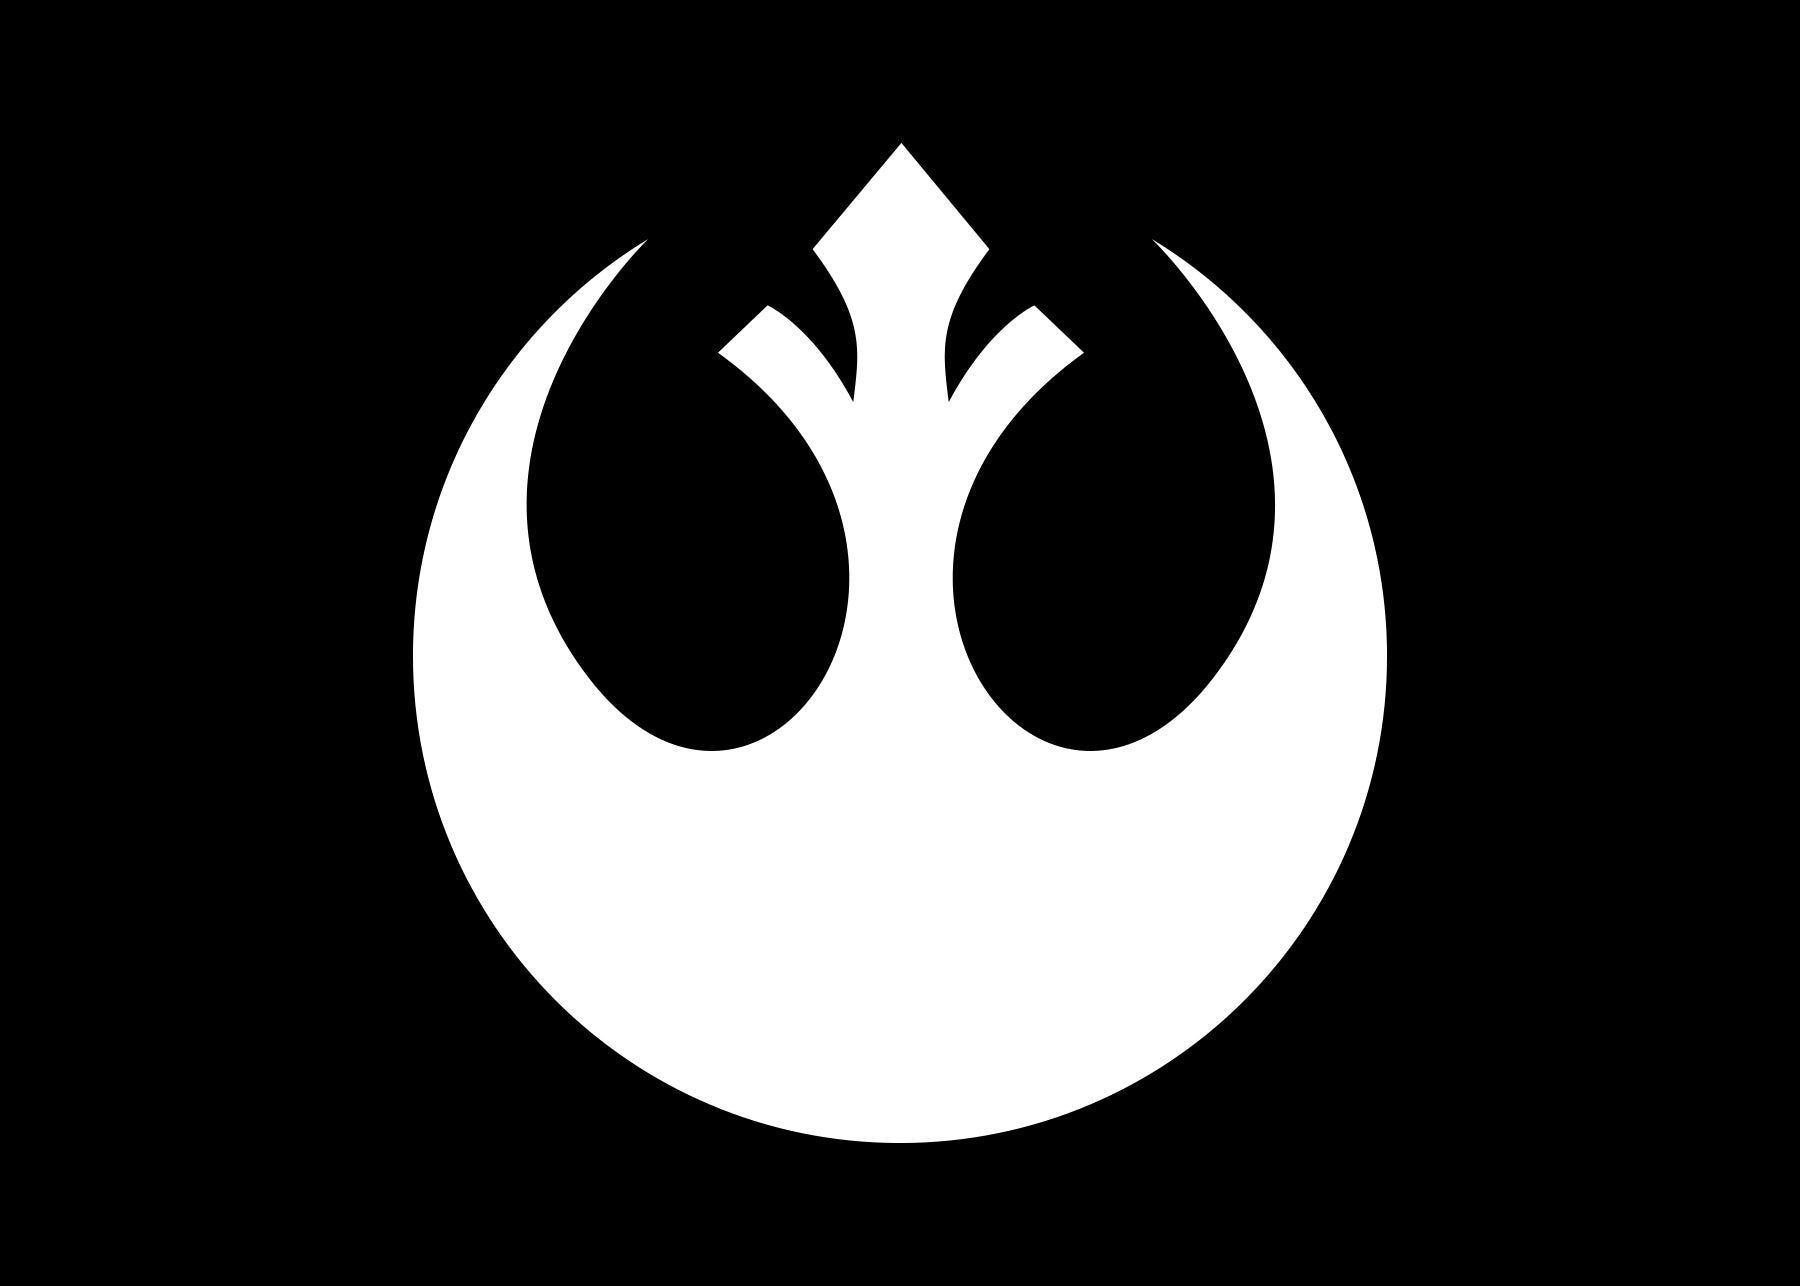 Rebel Alliance Star Wars Car Decal Sticker The Decal God - Star wars car decals